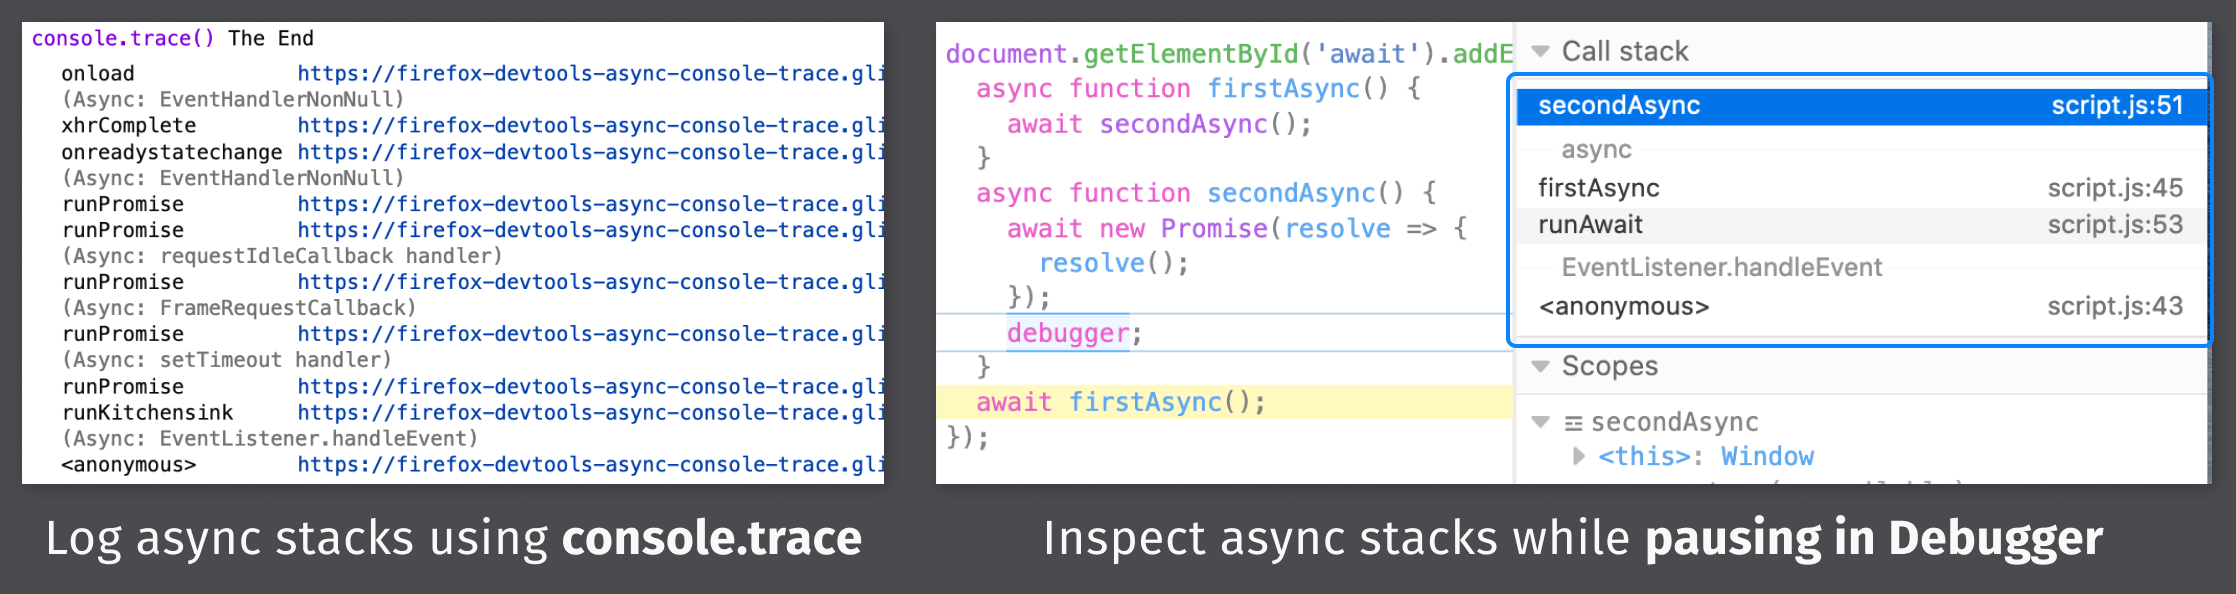 Async stacks add promise execution for both Console and Debugger